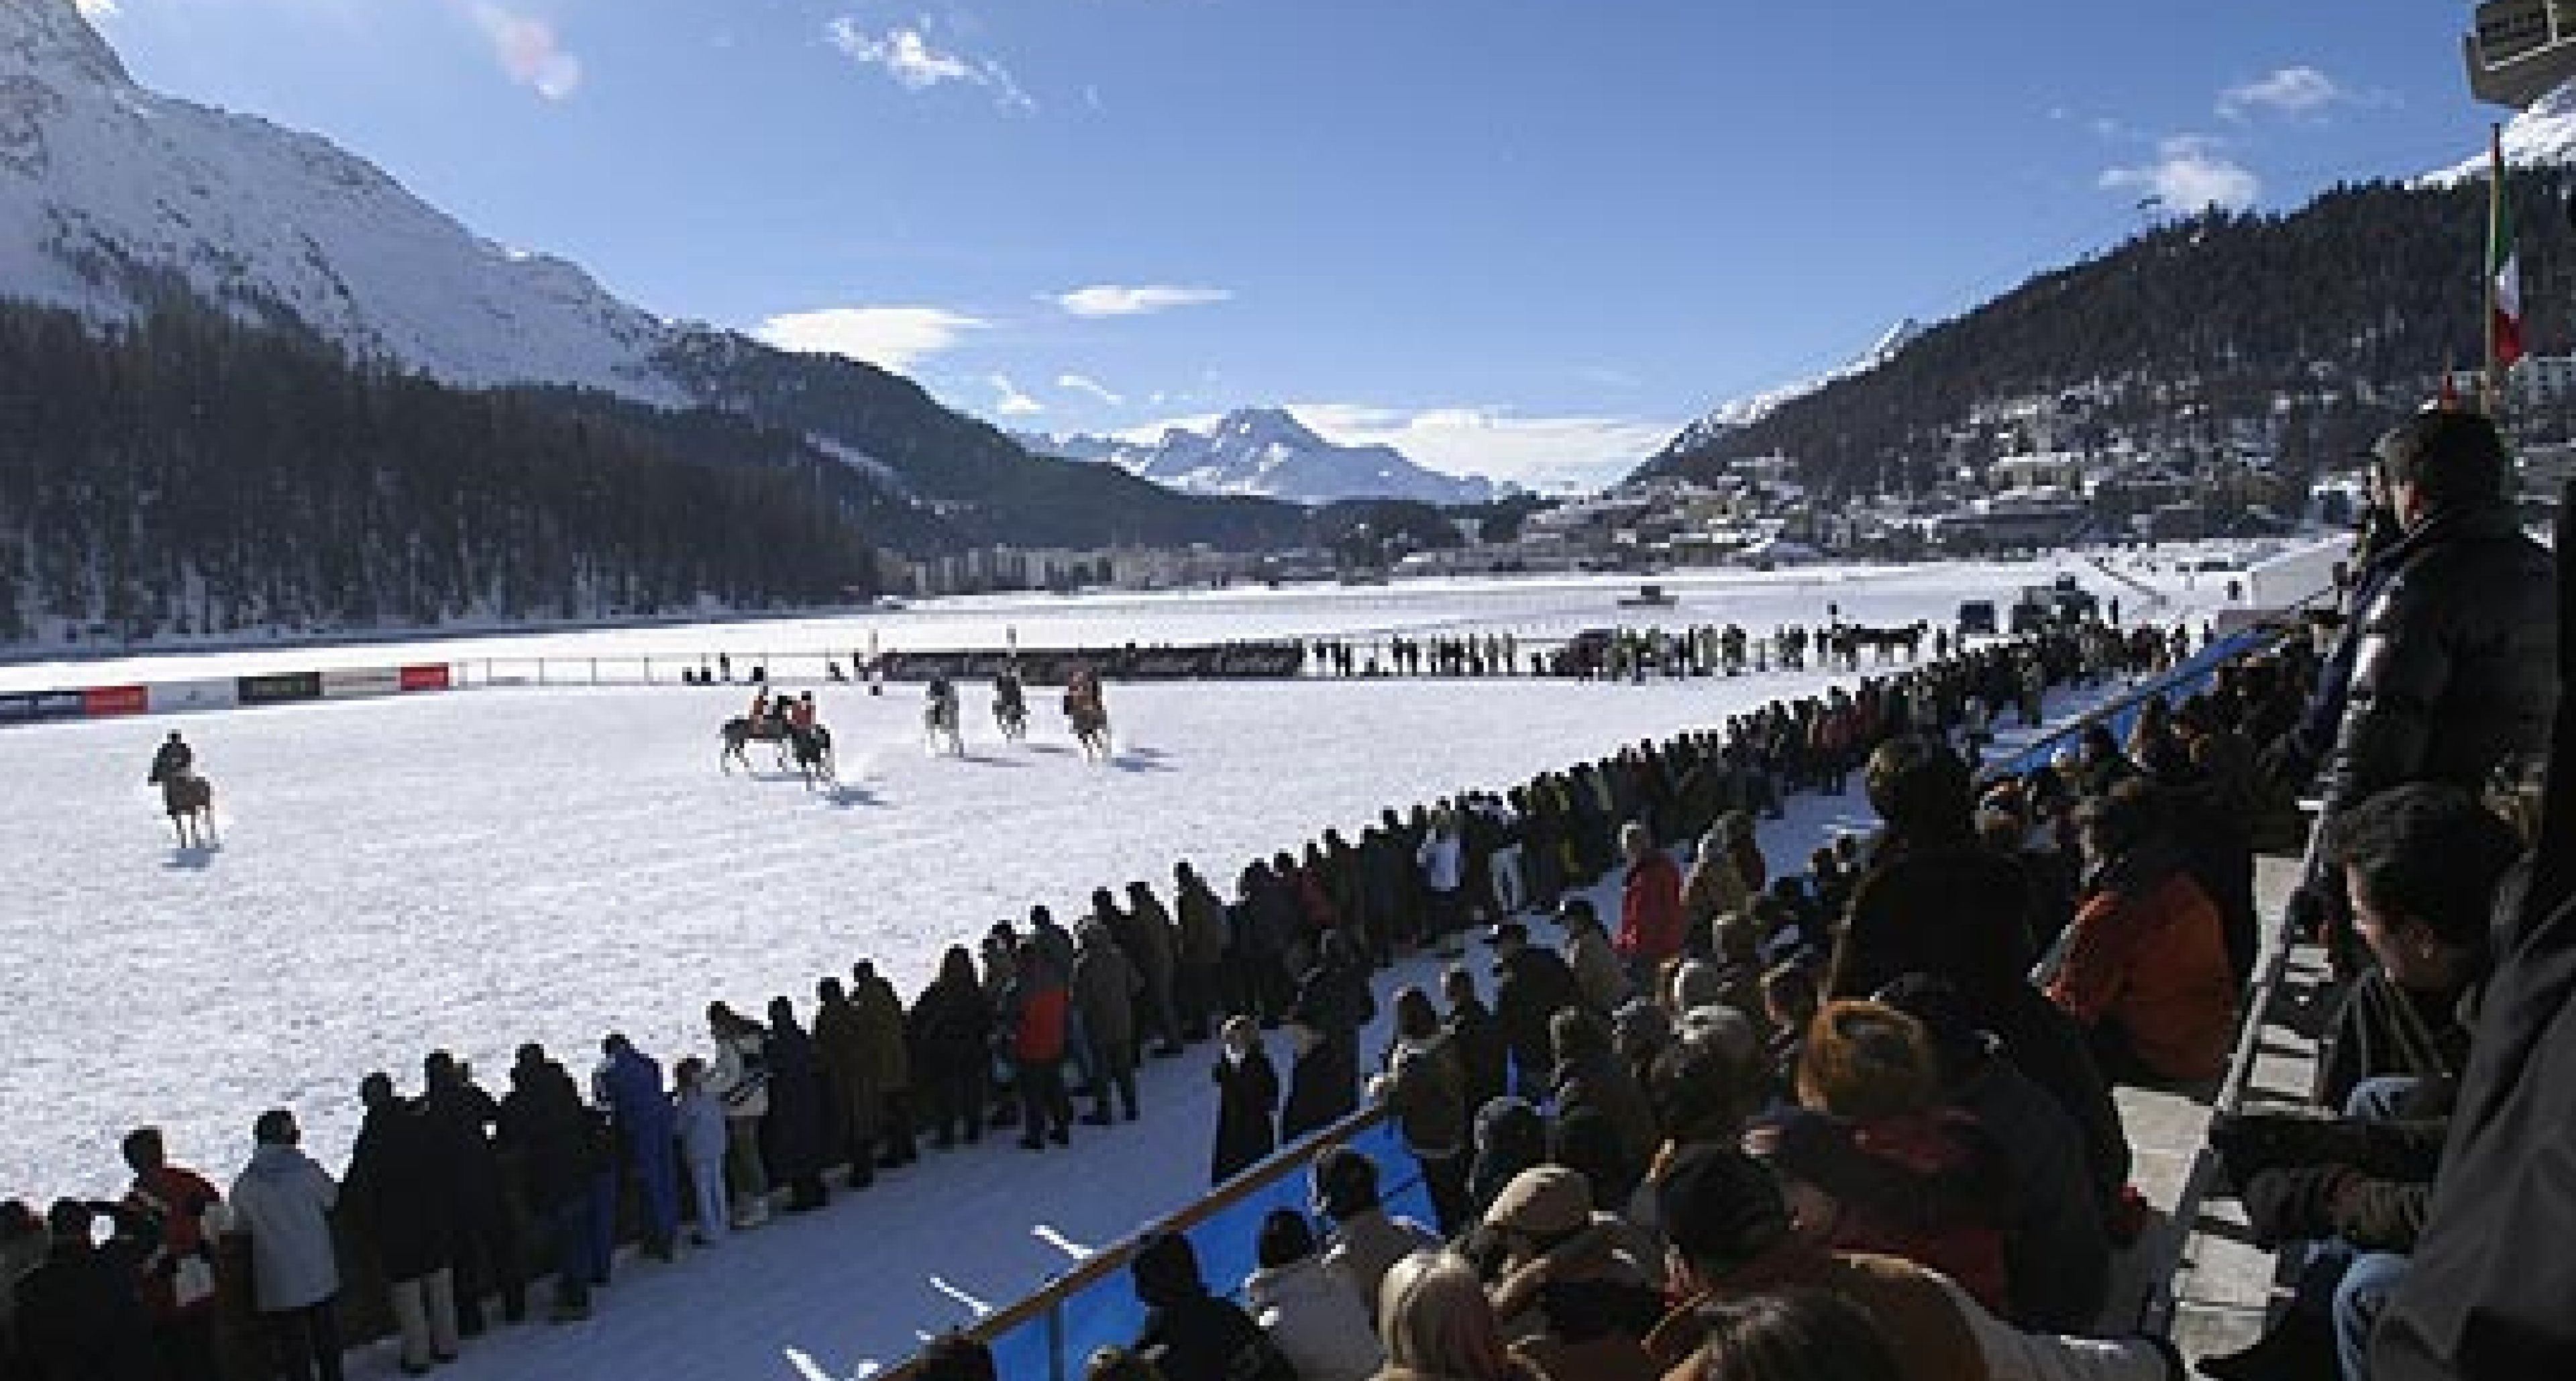 20th Cartier Polo World Cup on Snow - St. Moritz 2004